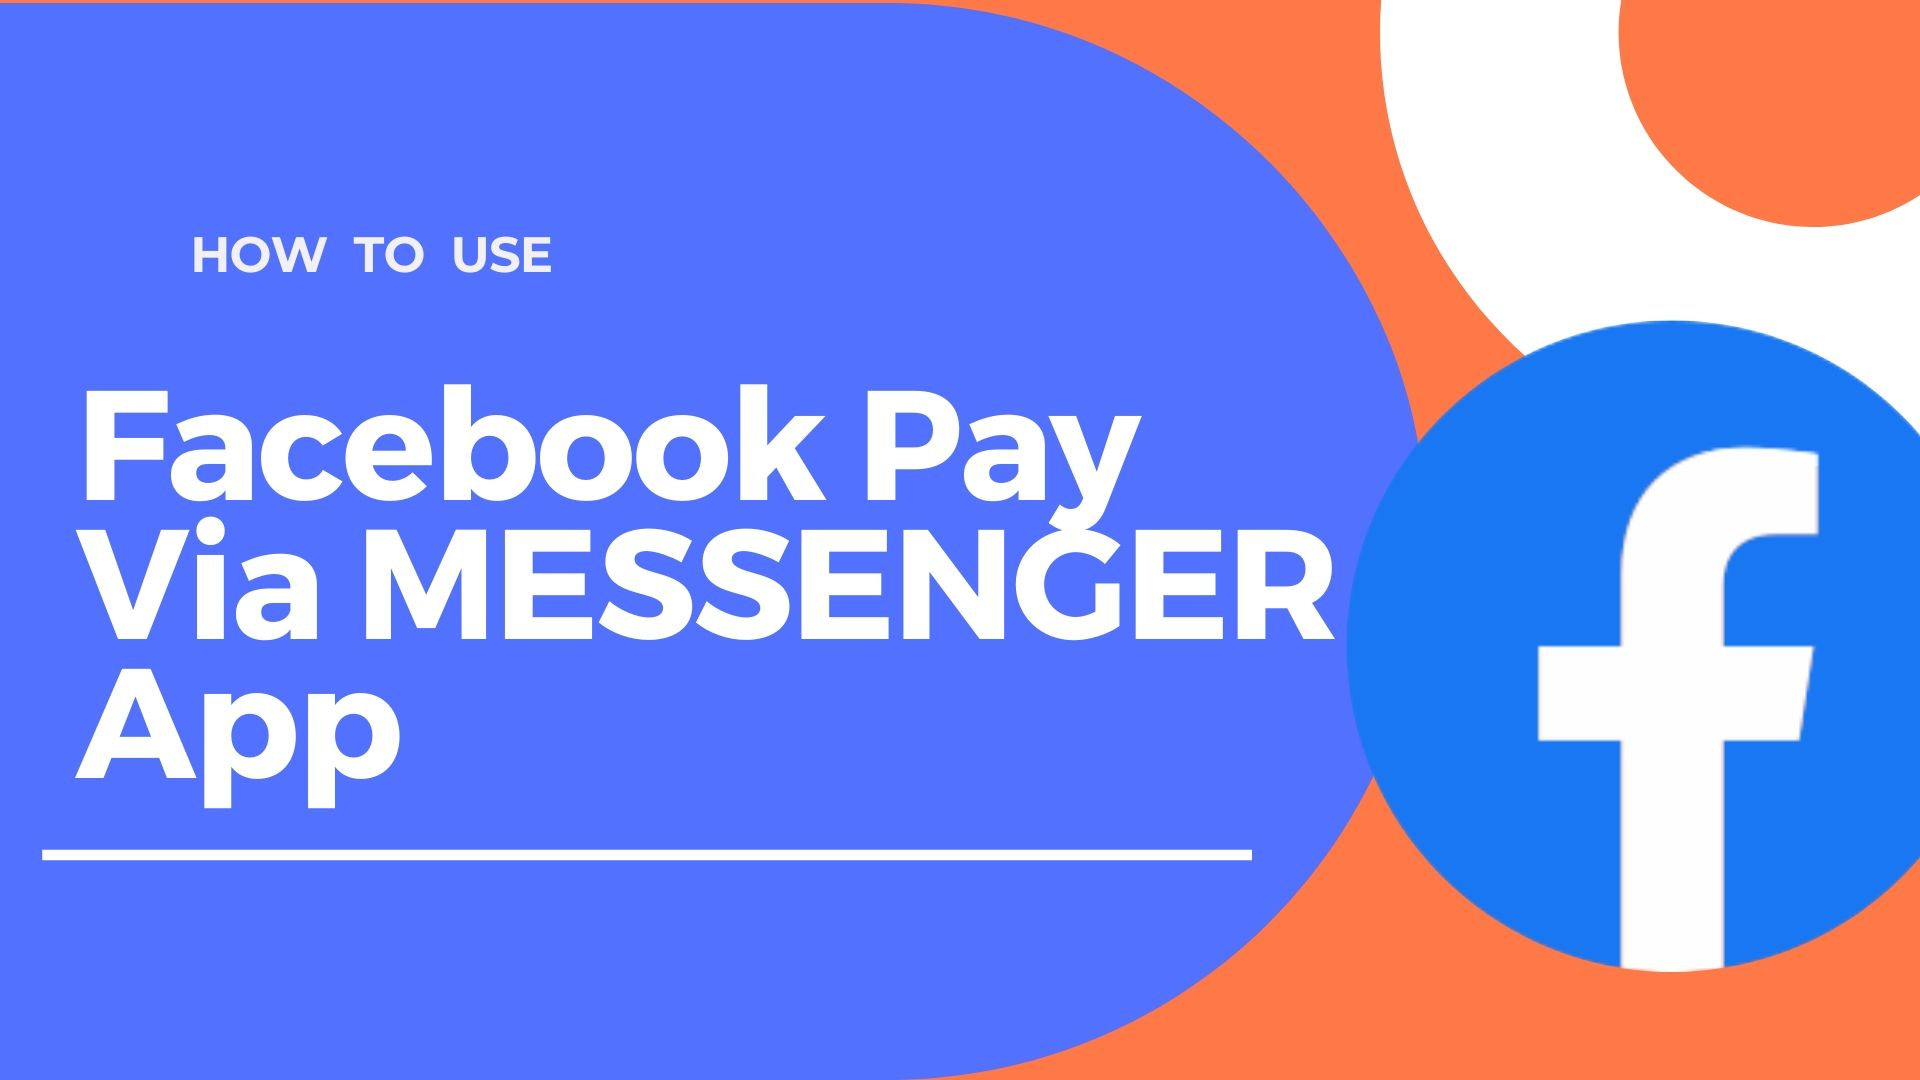 Facebook Pay Via MESSENGER App